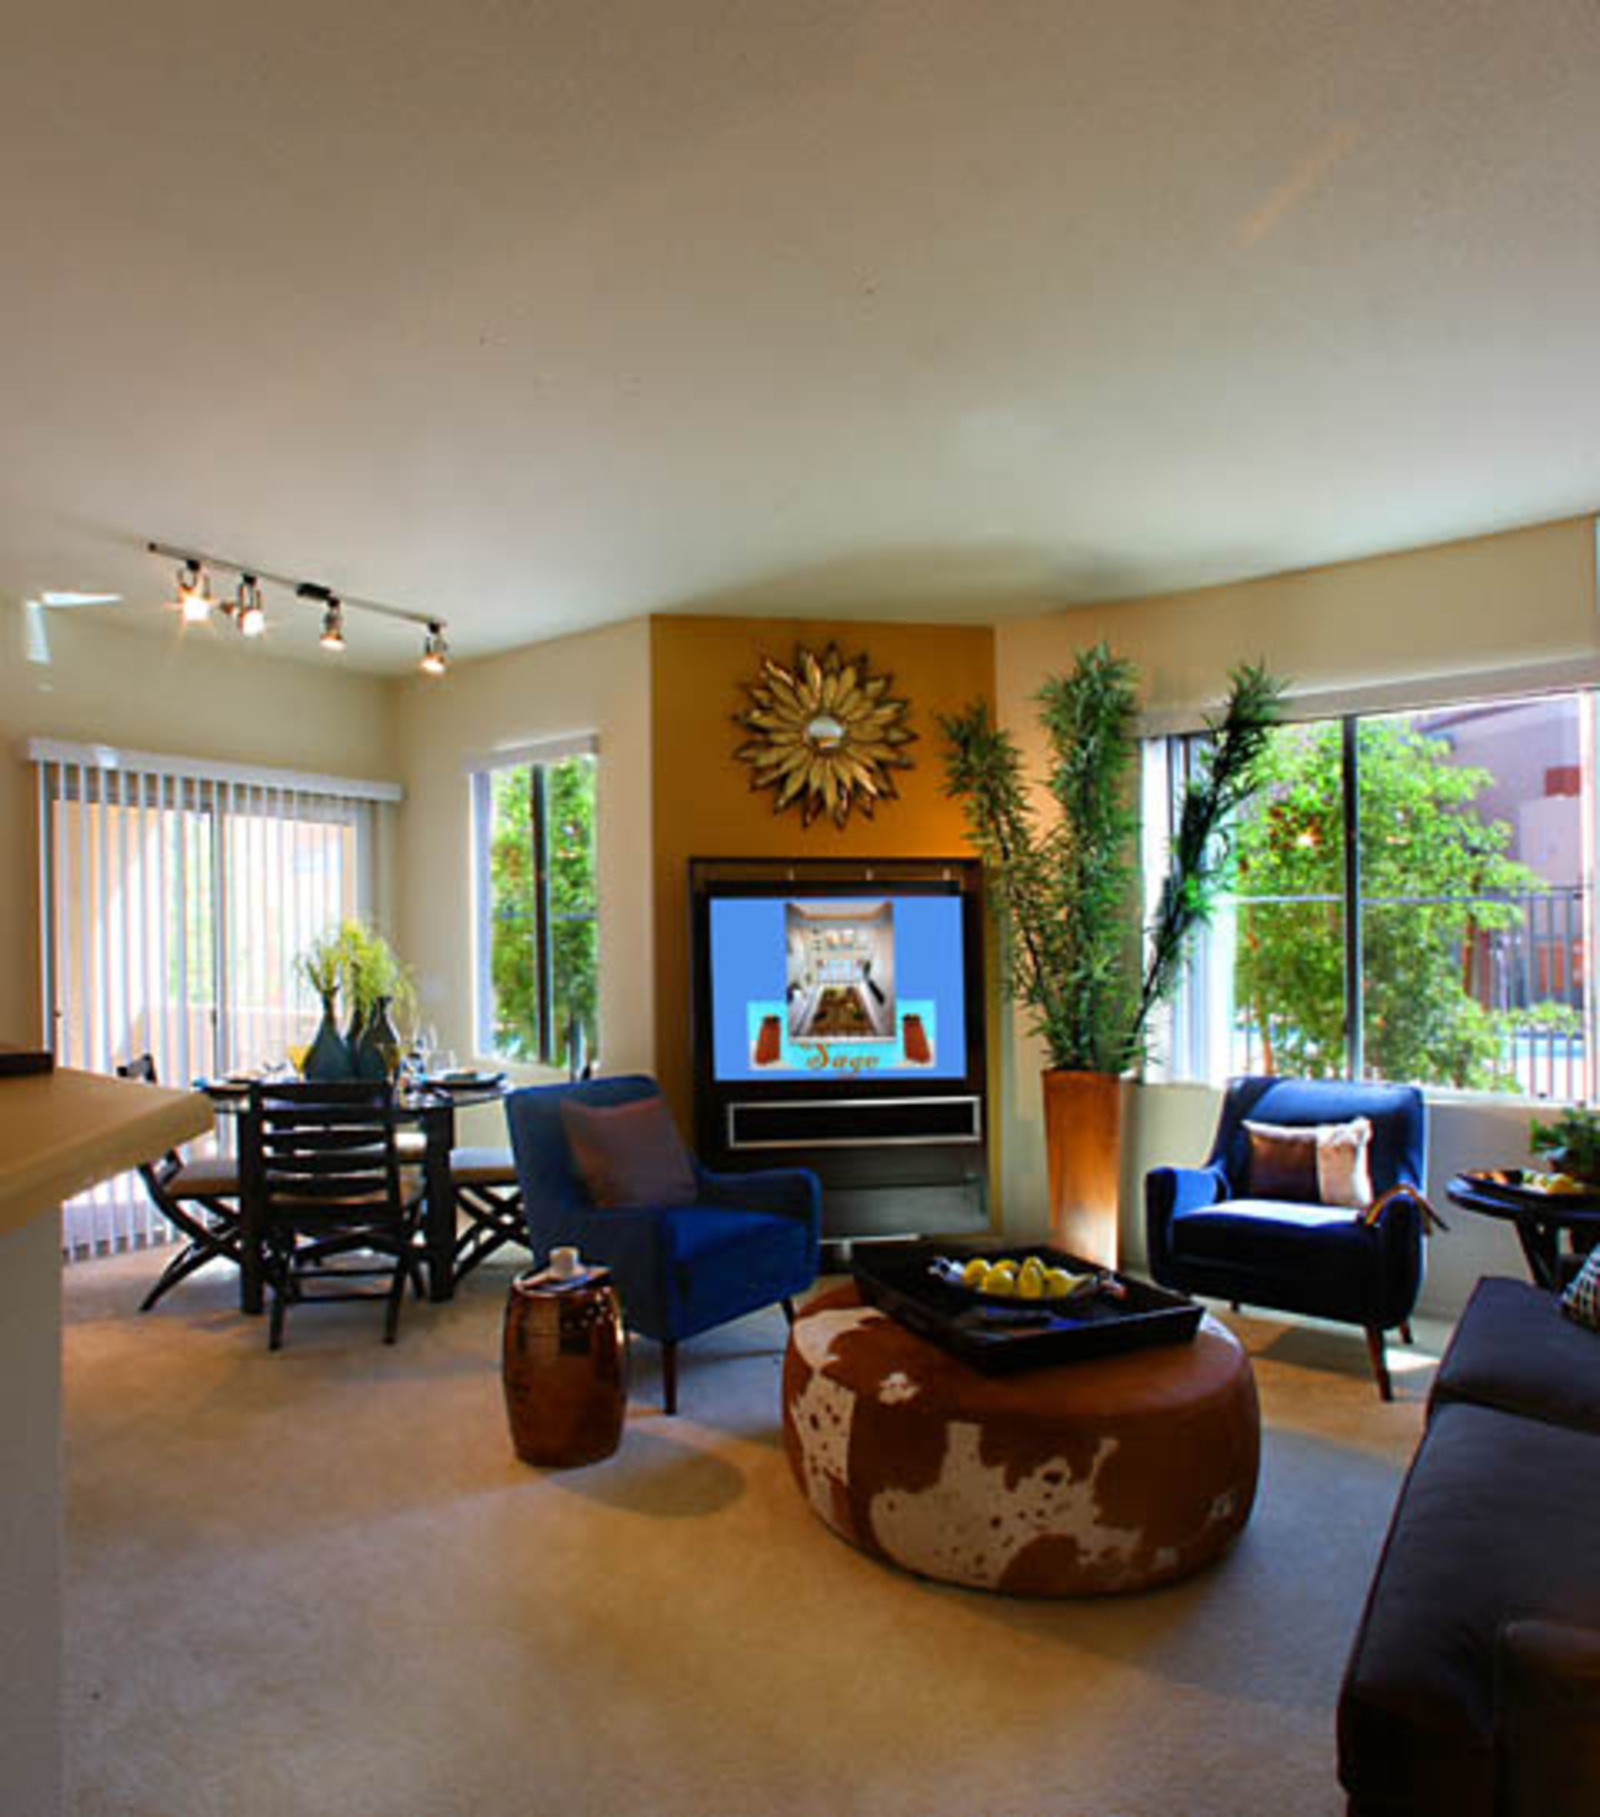 1 2 and 3 bedroom apartments in phoenix sage luxury apartment 1 2 and 3 bedroom apartments in phoenix sage luxury apartment homes